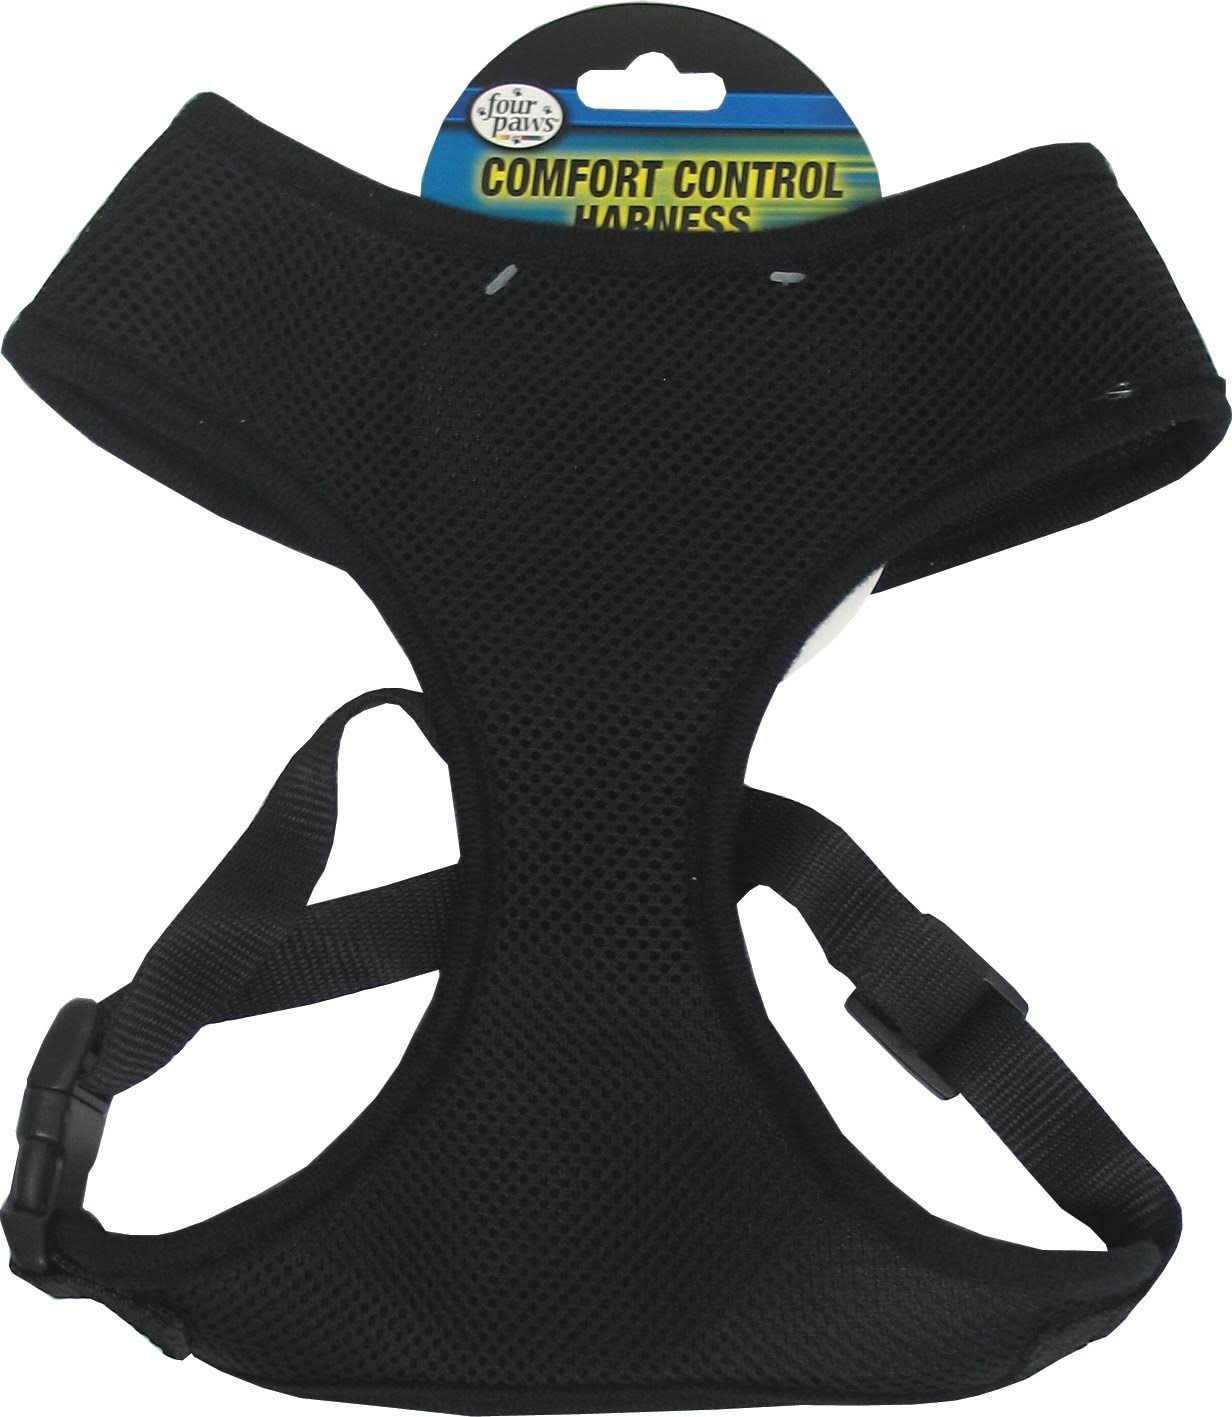 Four Paws Products Small Comfort Control Dog Harness - Black